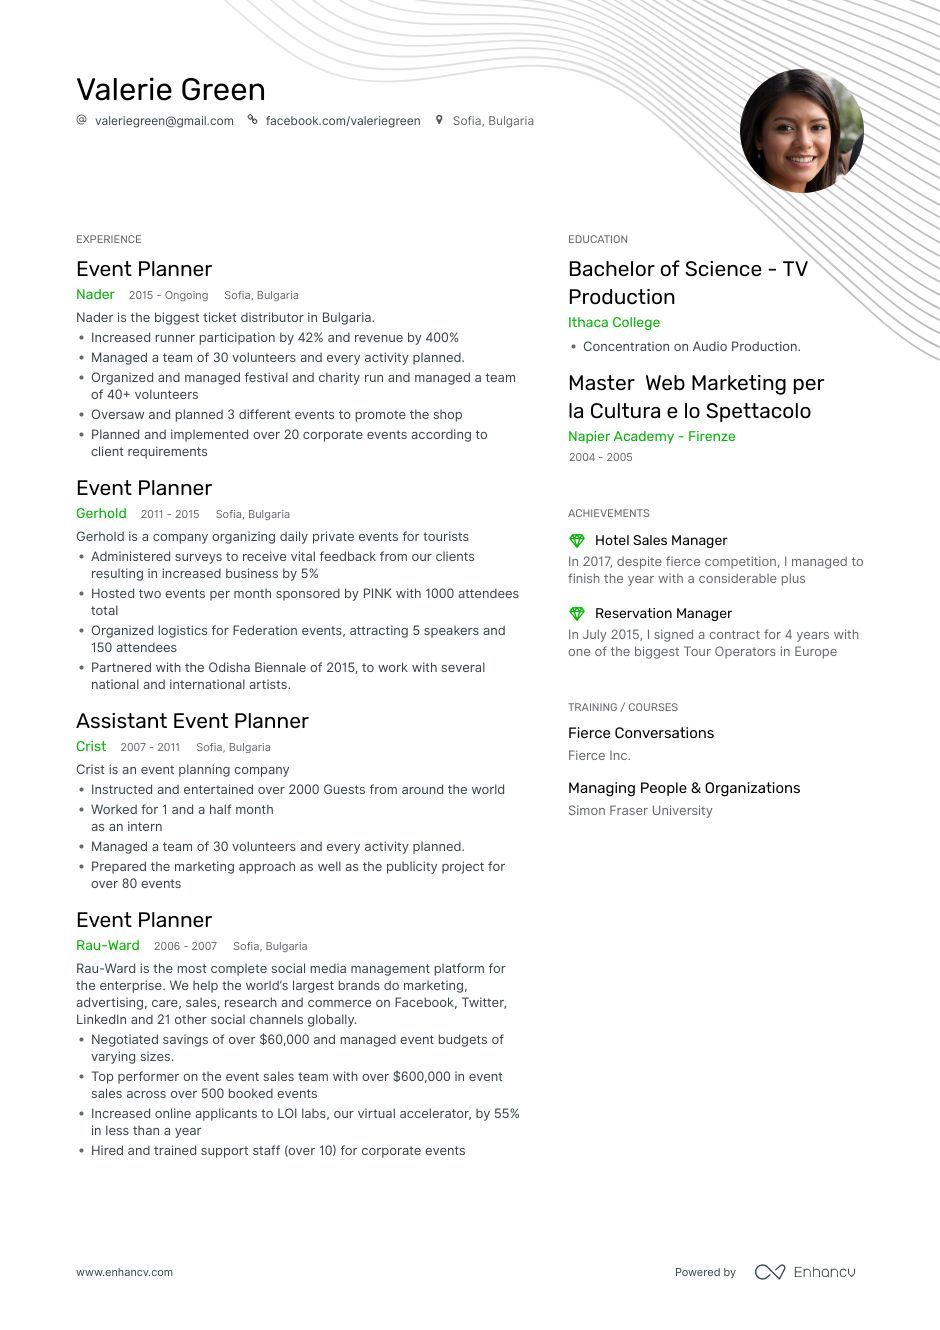 Top Event Planner Resume Examples & Samples for 2020